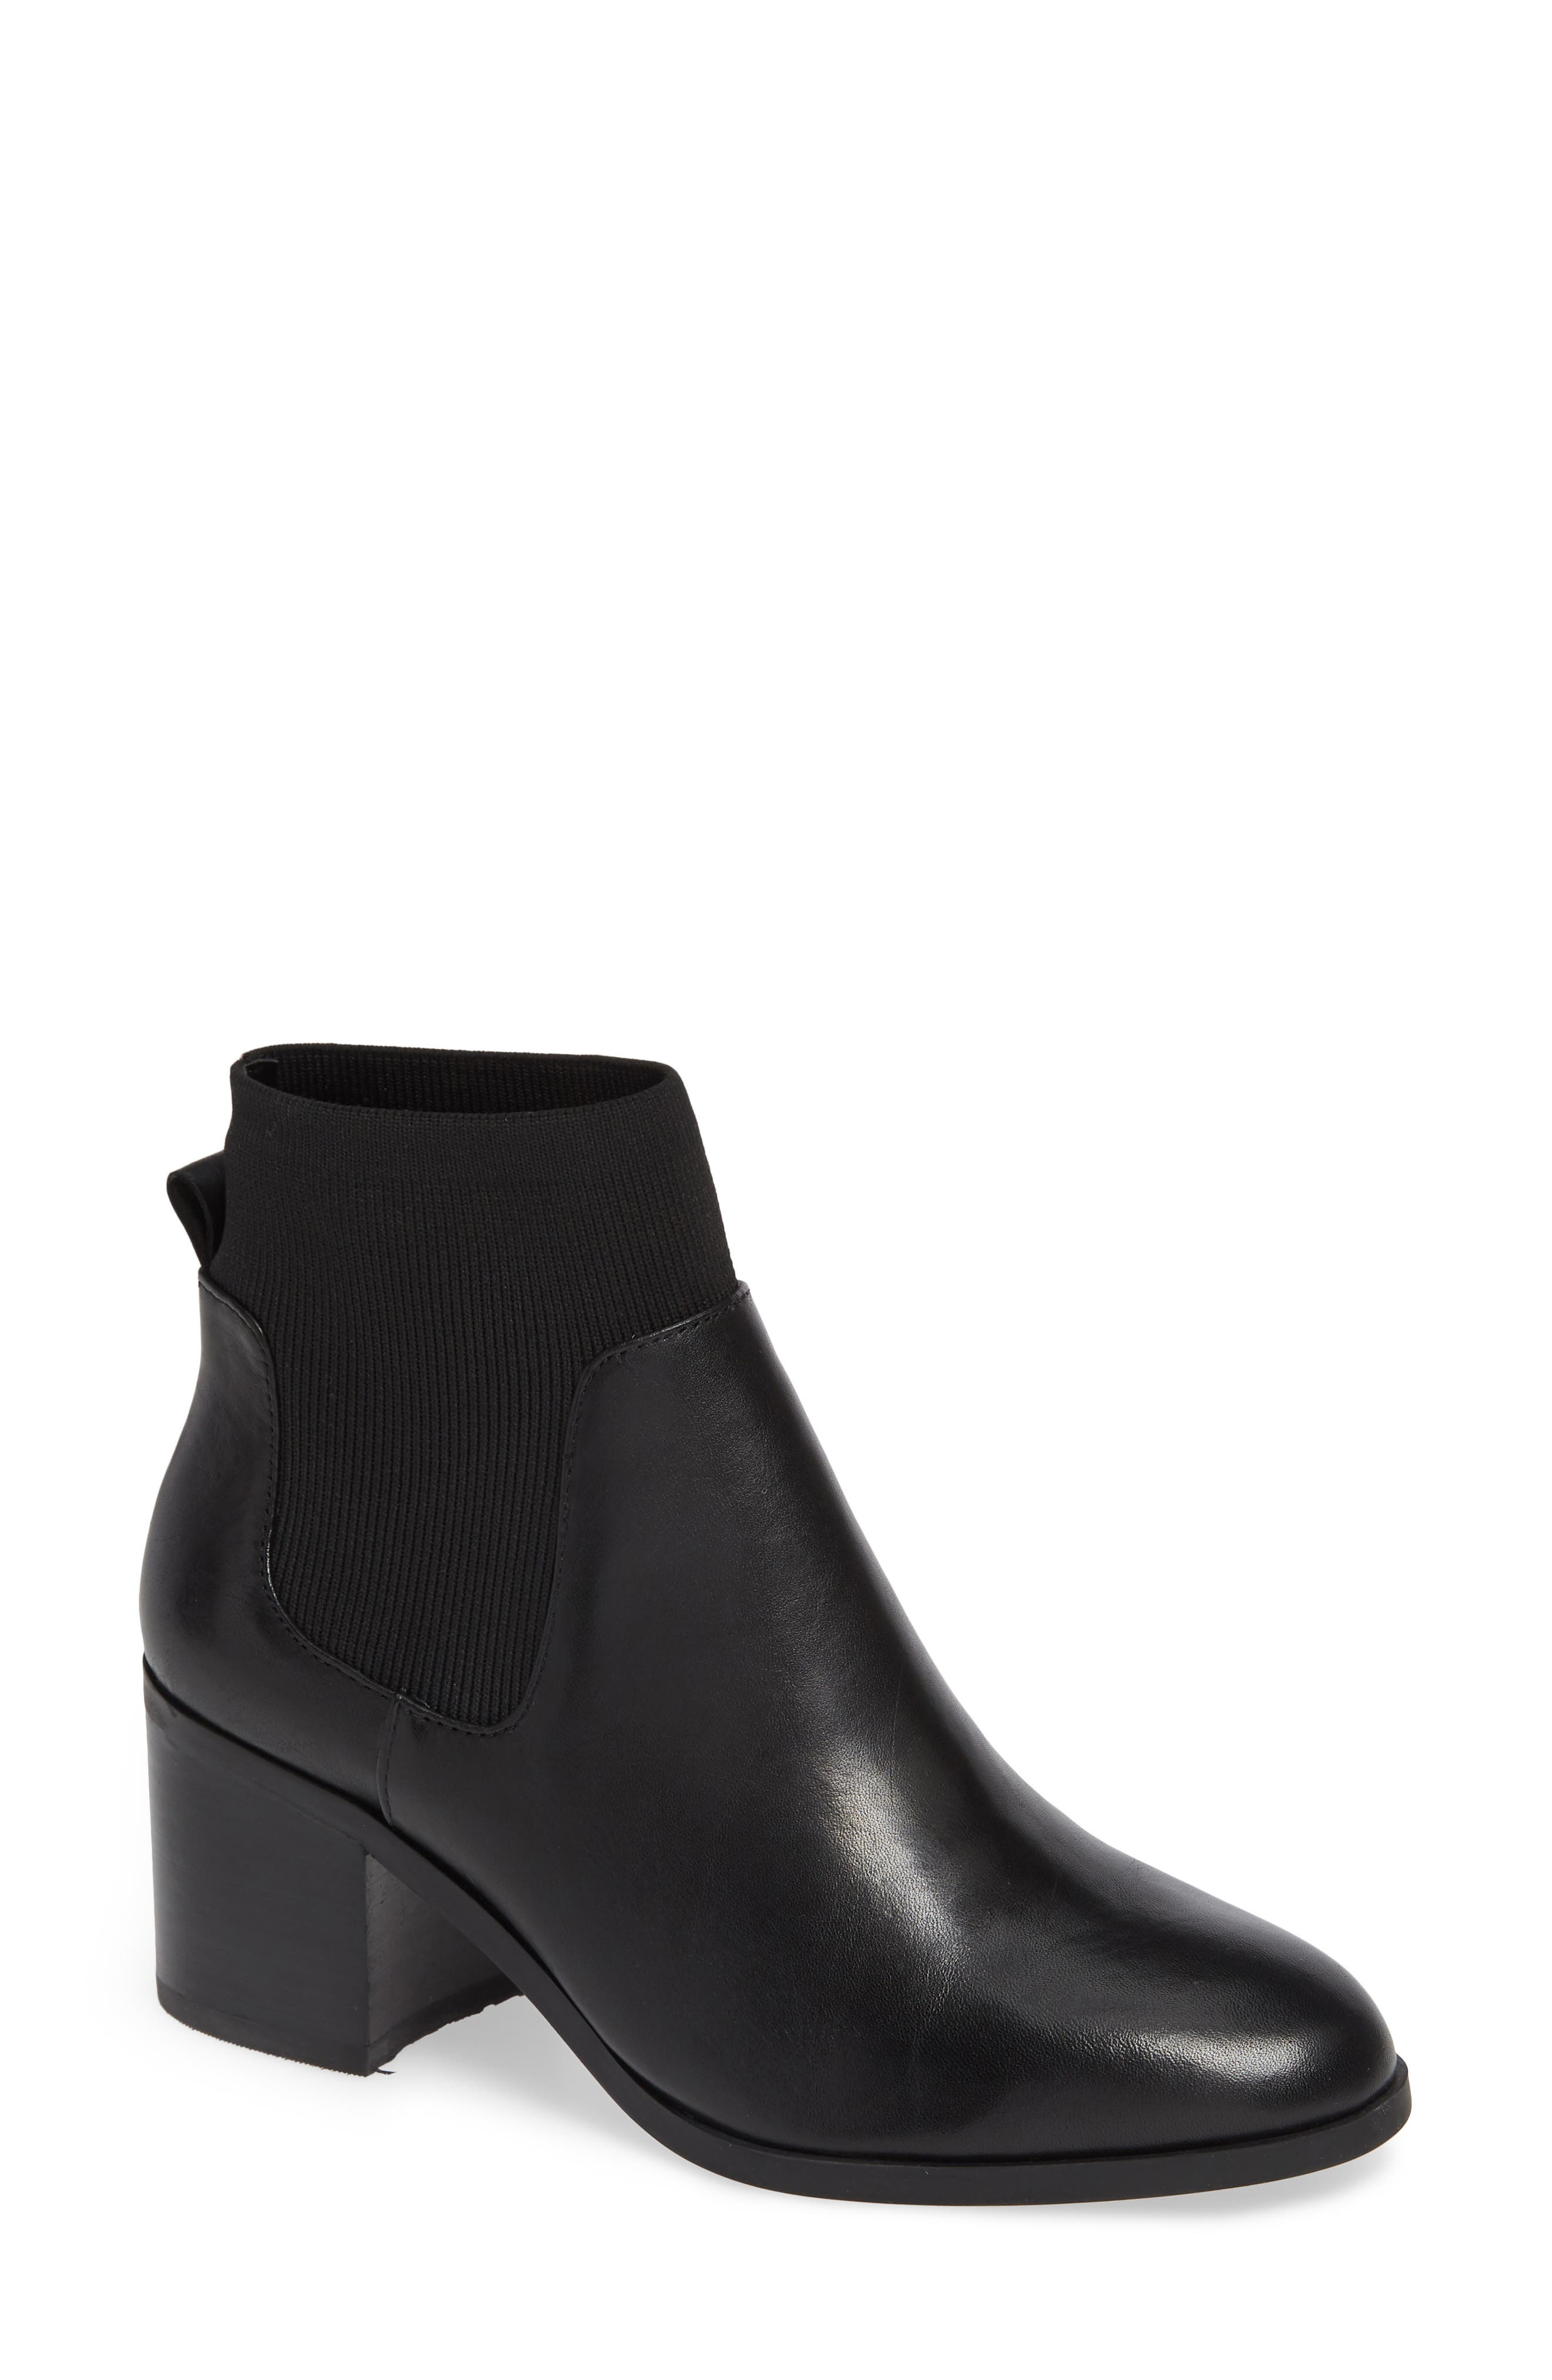 Erika Bootie,                         Main,                         color, BLACK LEATHER